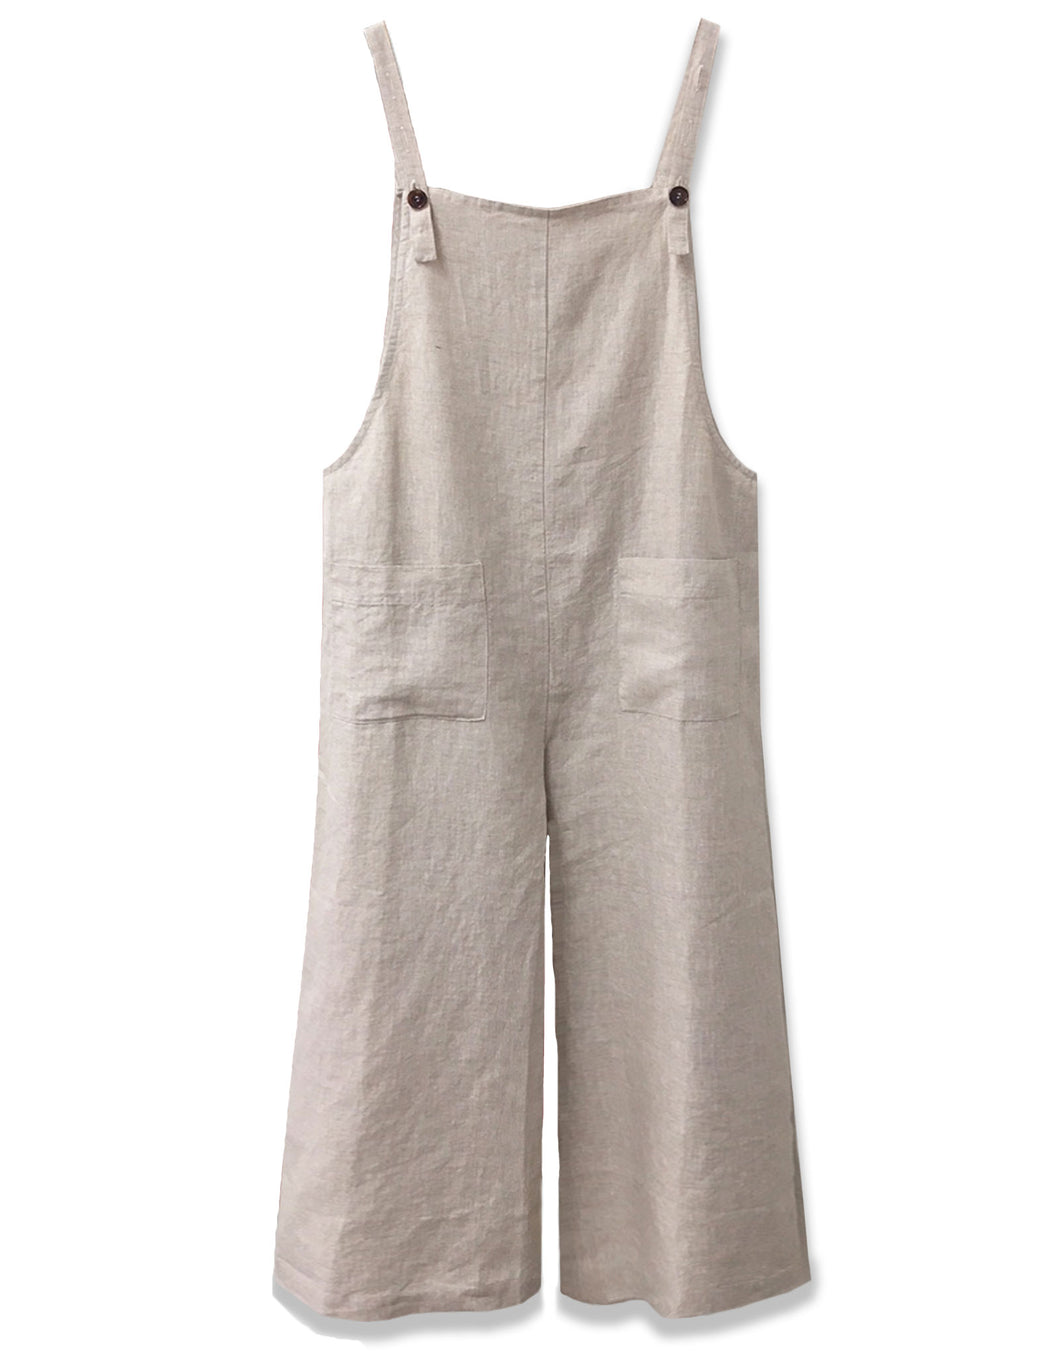 Linen overall in natural